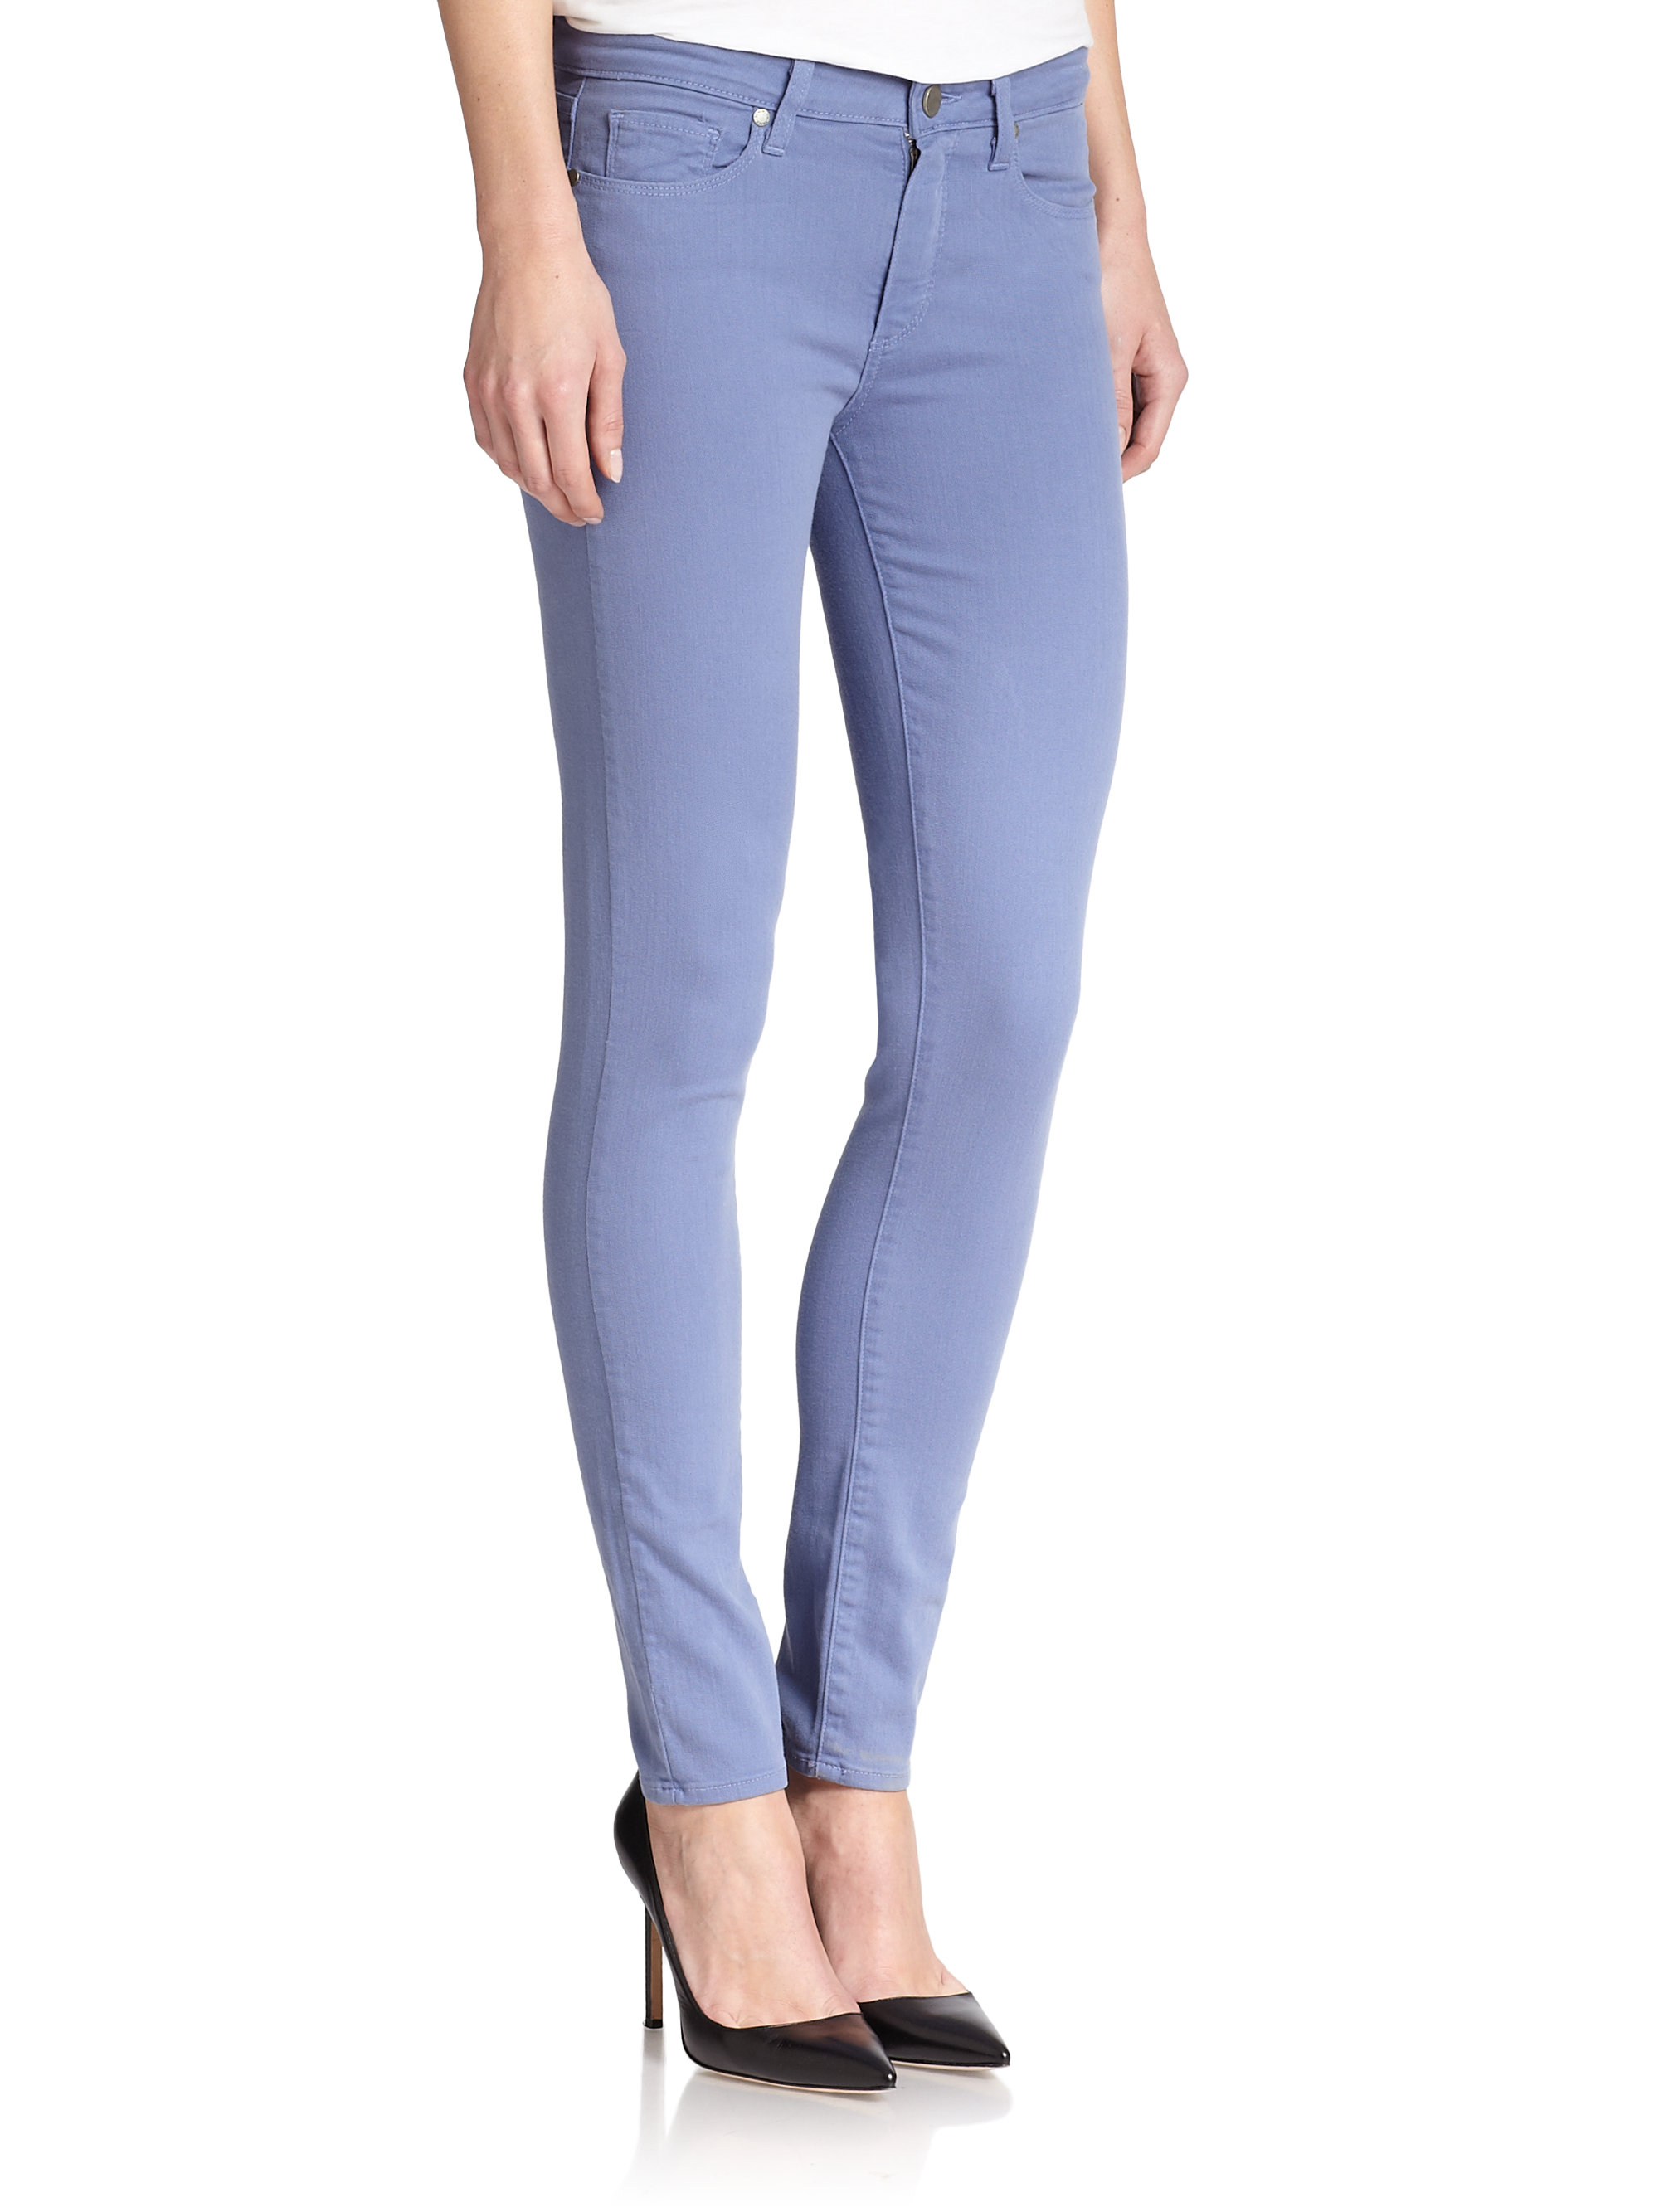 Lyst - Paige Verdugo Colored Skinny Jeans in Purple